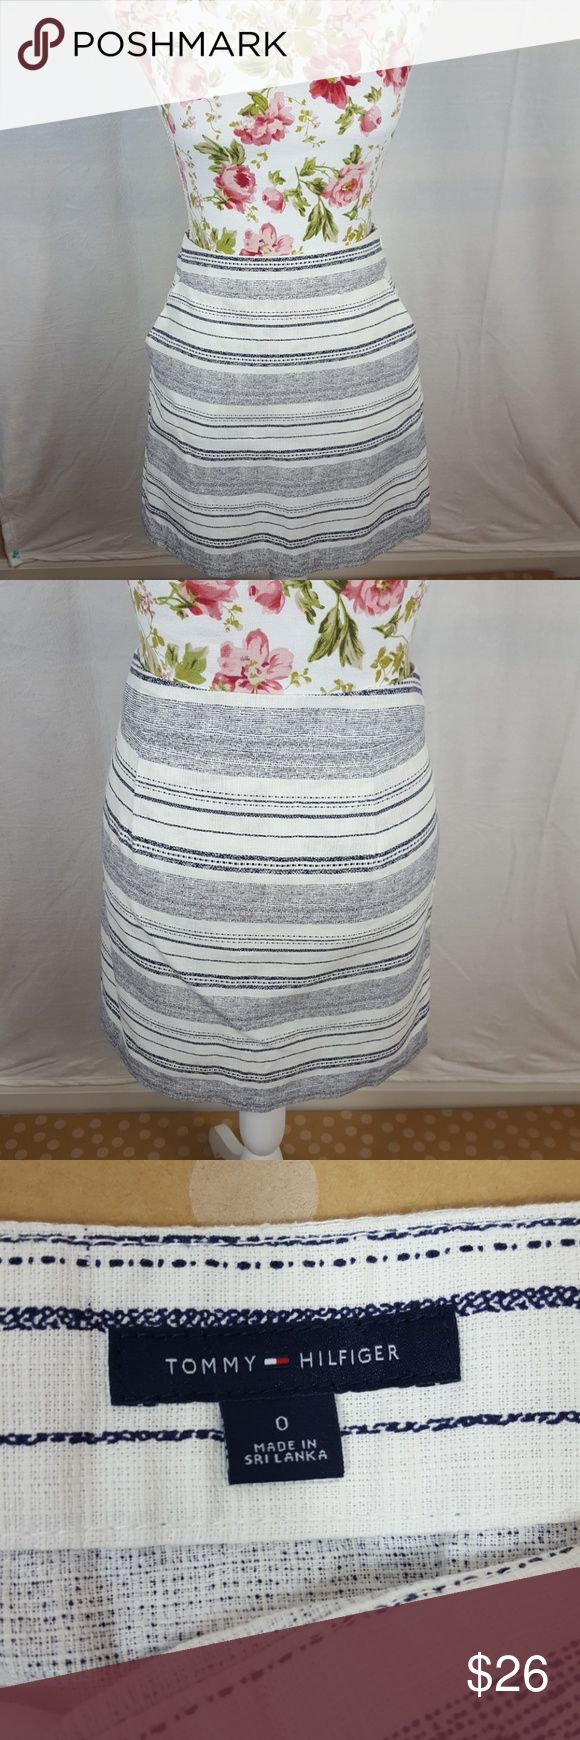 TOMMY HILFIGER Blue and White Cotton Linen Skirt This skirt has wonderful stippled stripes going across horizontally. An expertly Hidden Side zip topped with a hook and eye and pockets. Perfect condition.  Waist: 15 inches laying flat Length: 17 inches Tommy Hilfiger Skirts